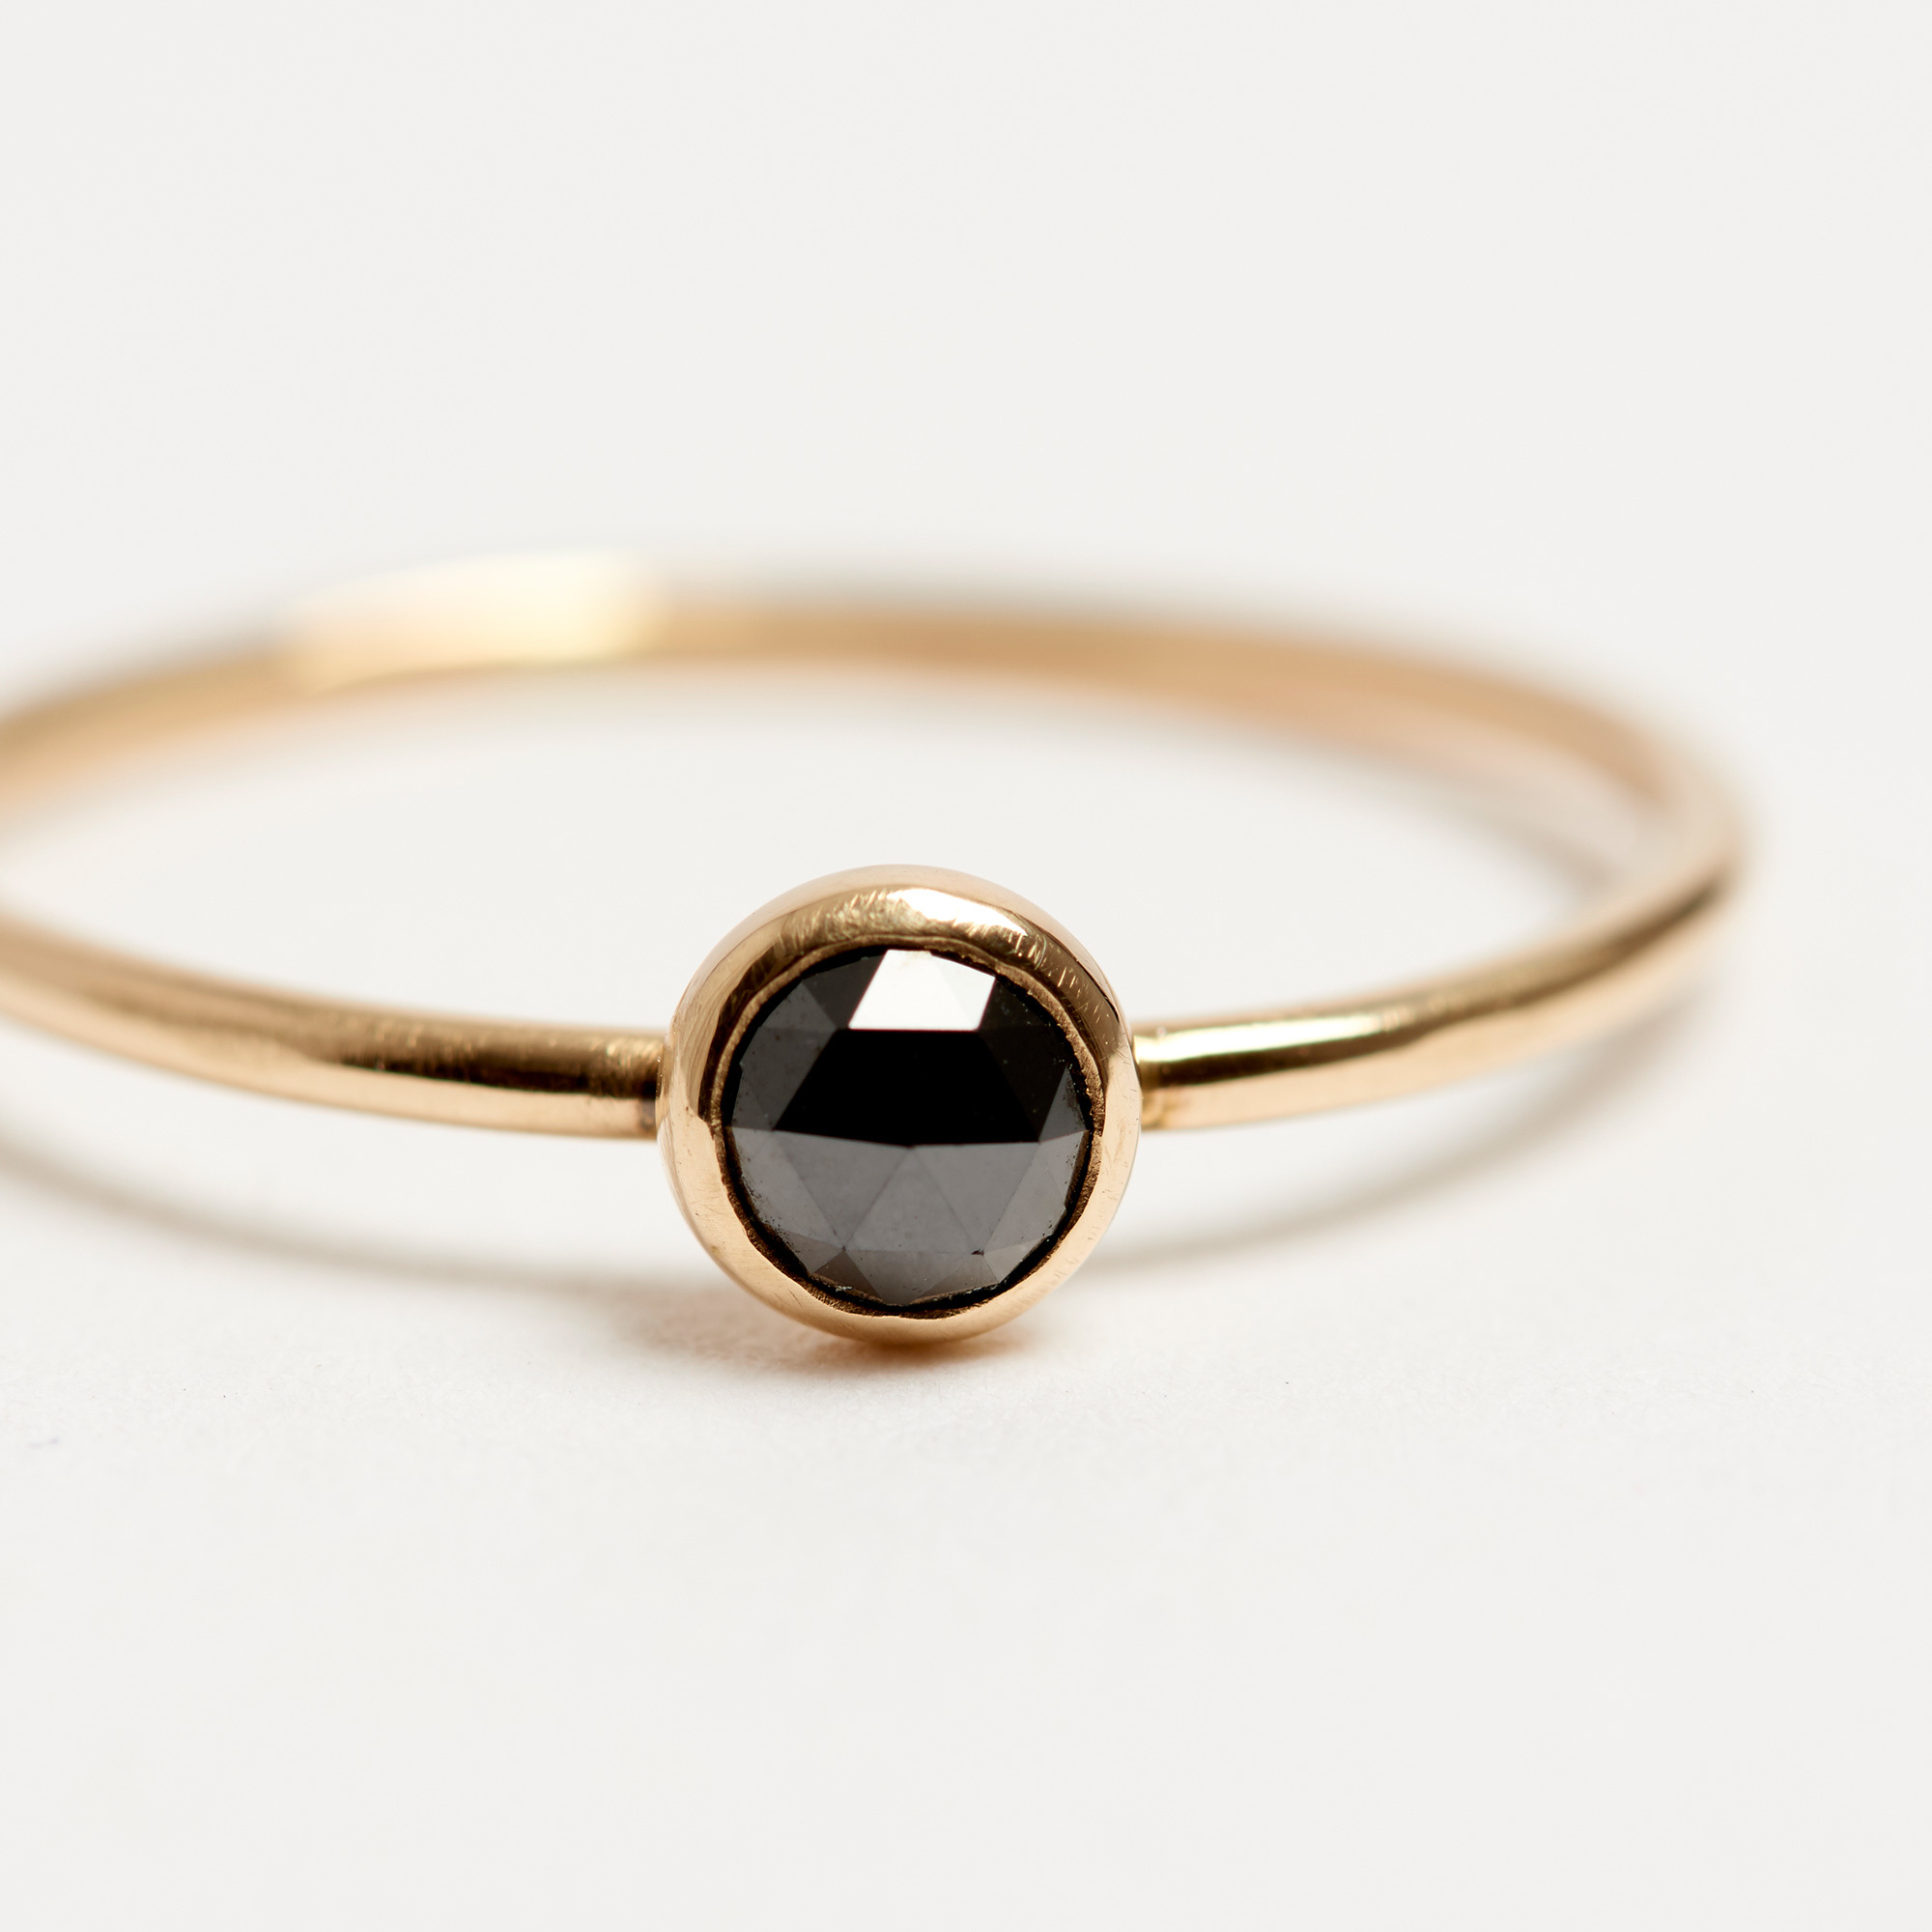 bloom jewels coderque coderquerings plated en gold topaz innocent ring